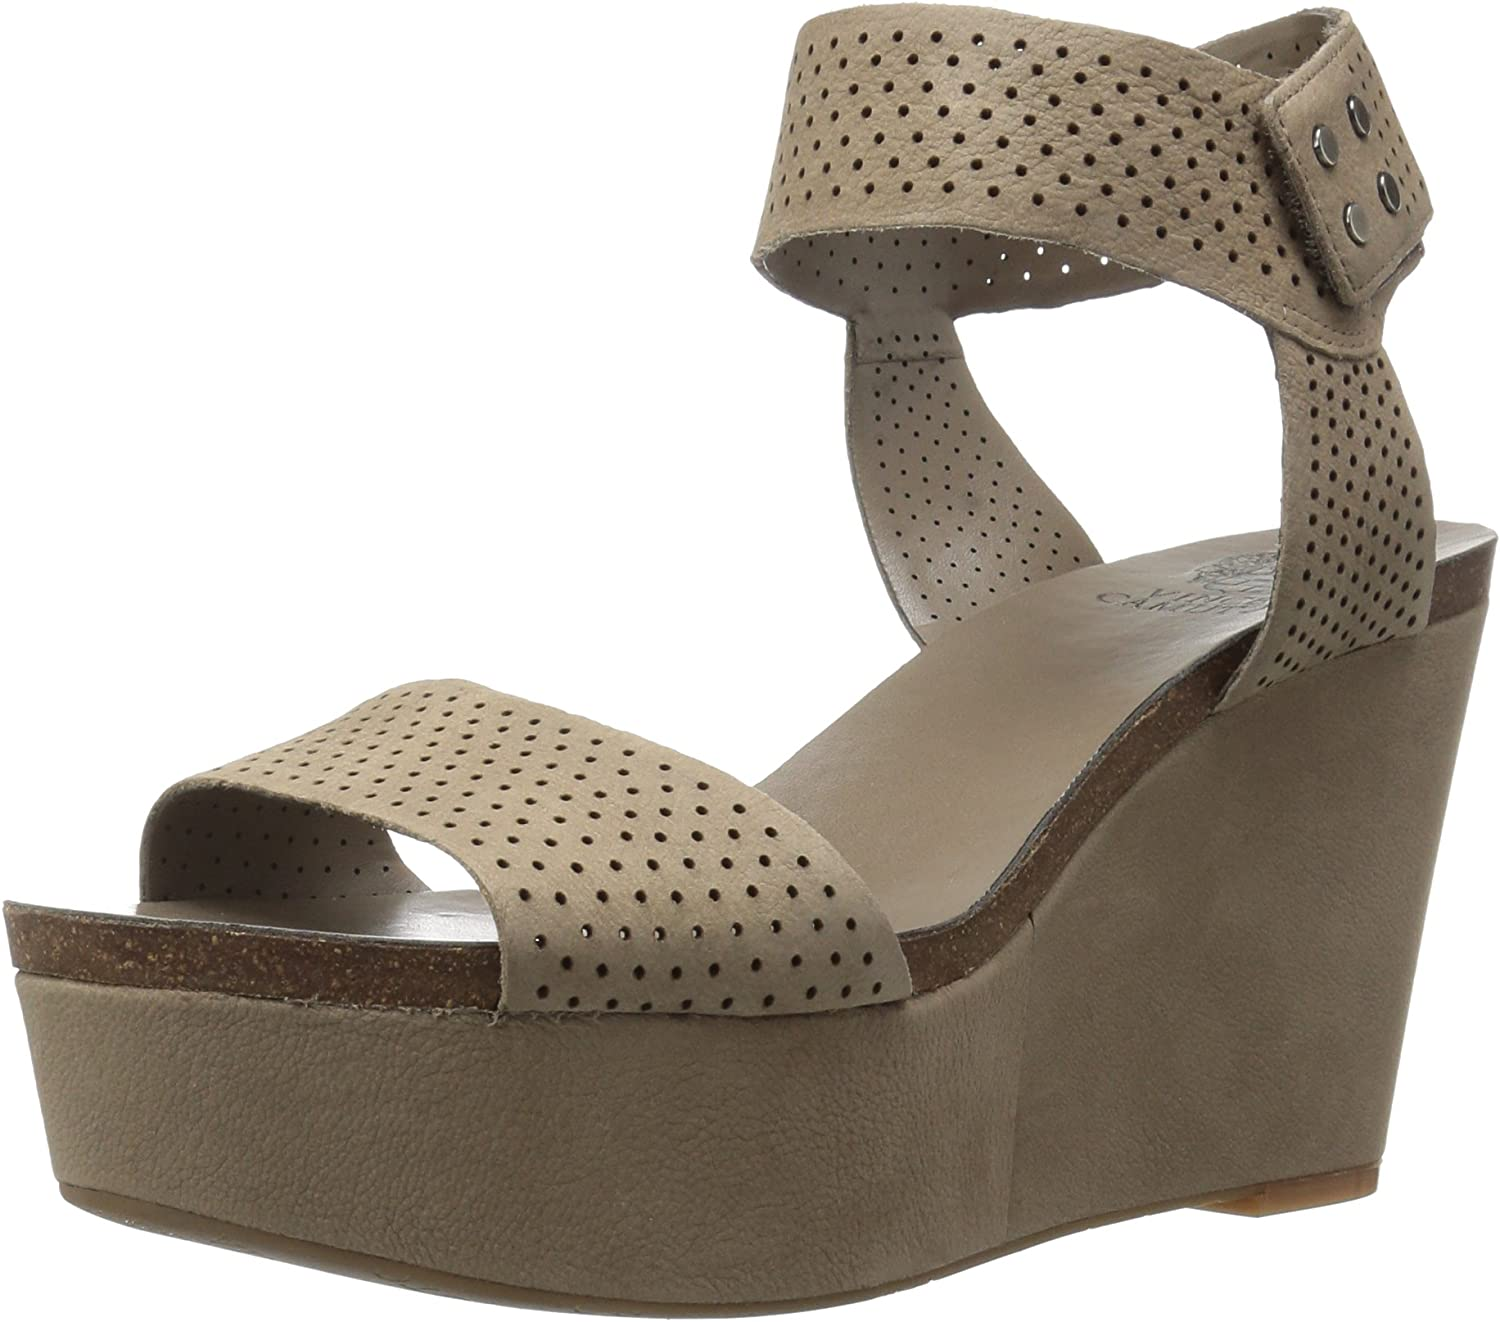 Vince Camuto Women's VALAMIE Wedge Sandals